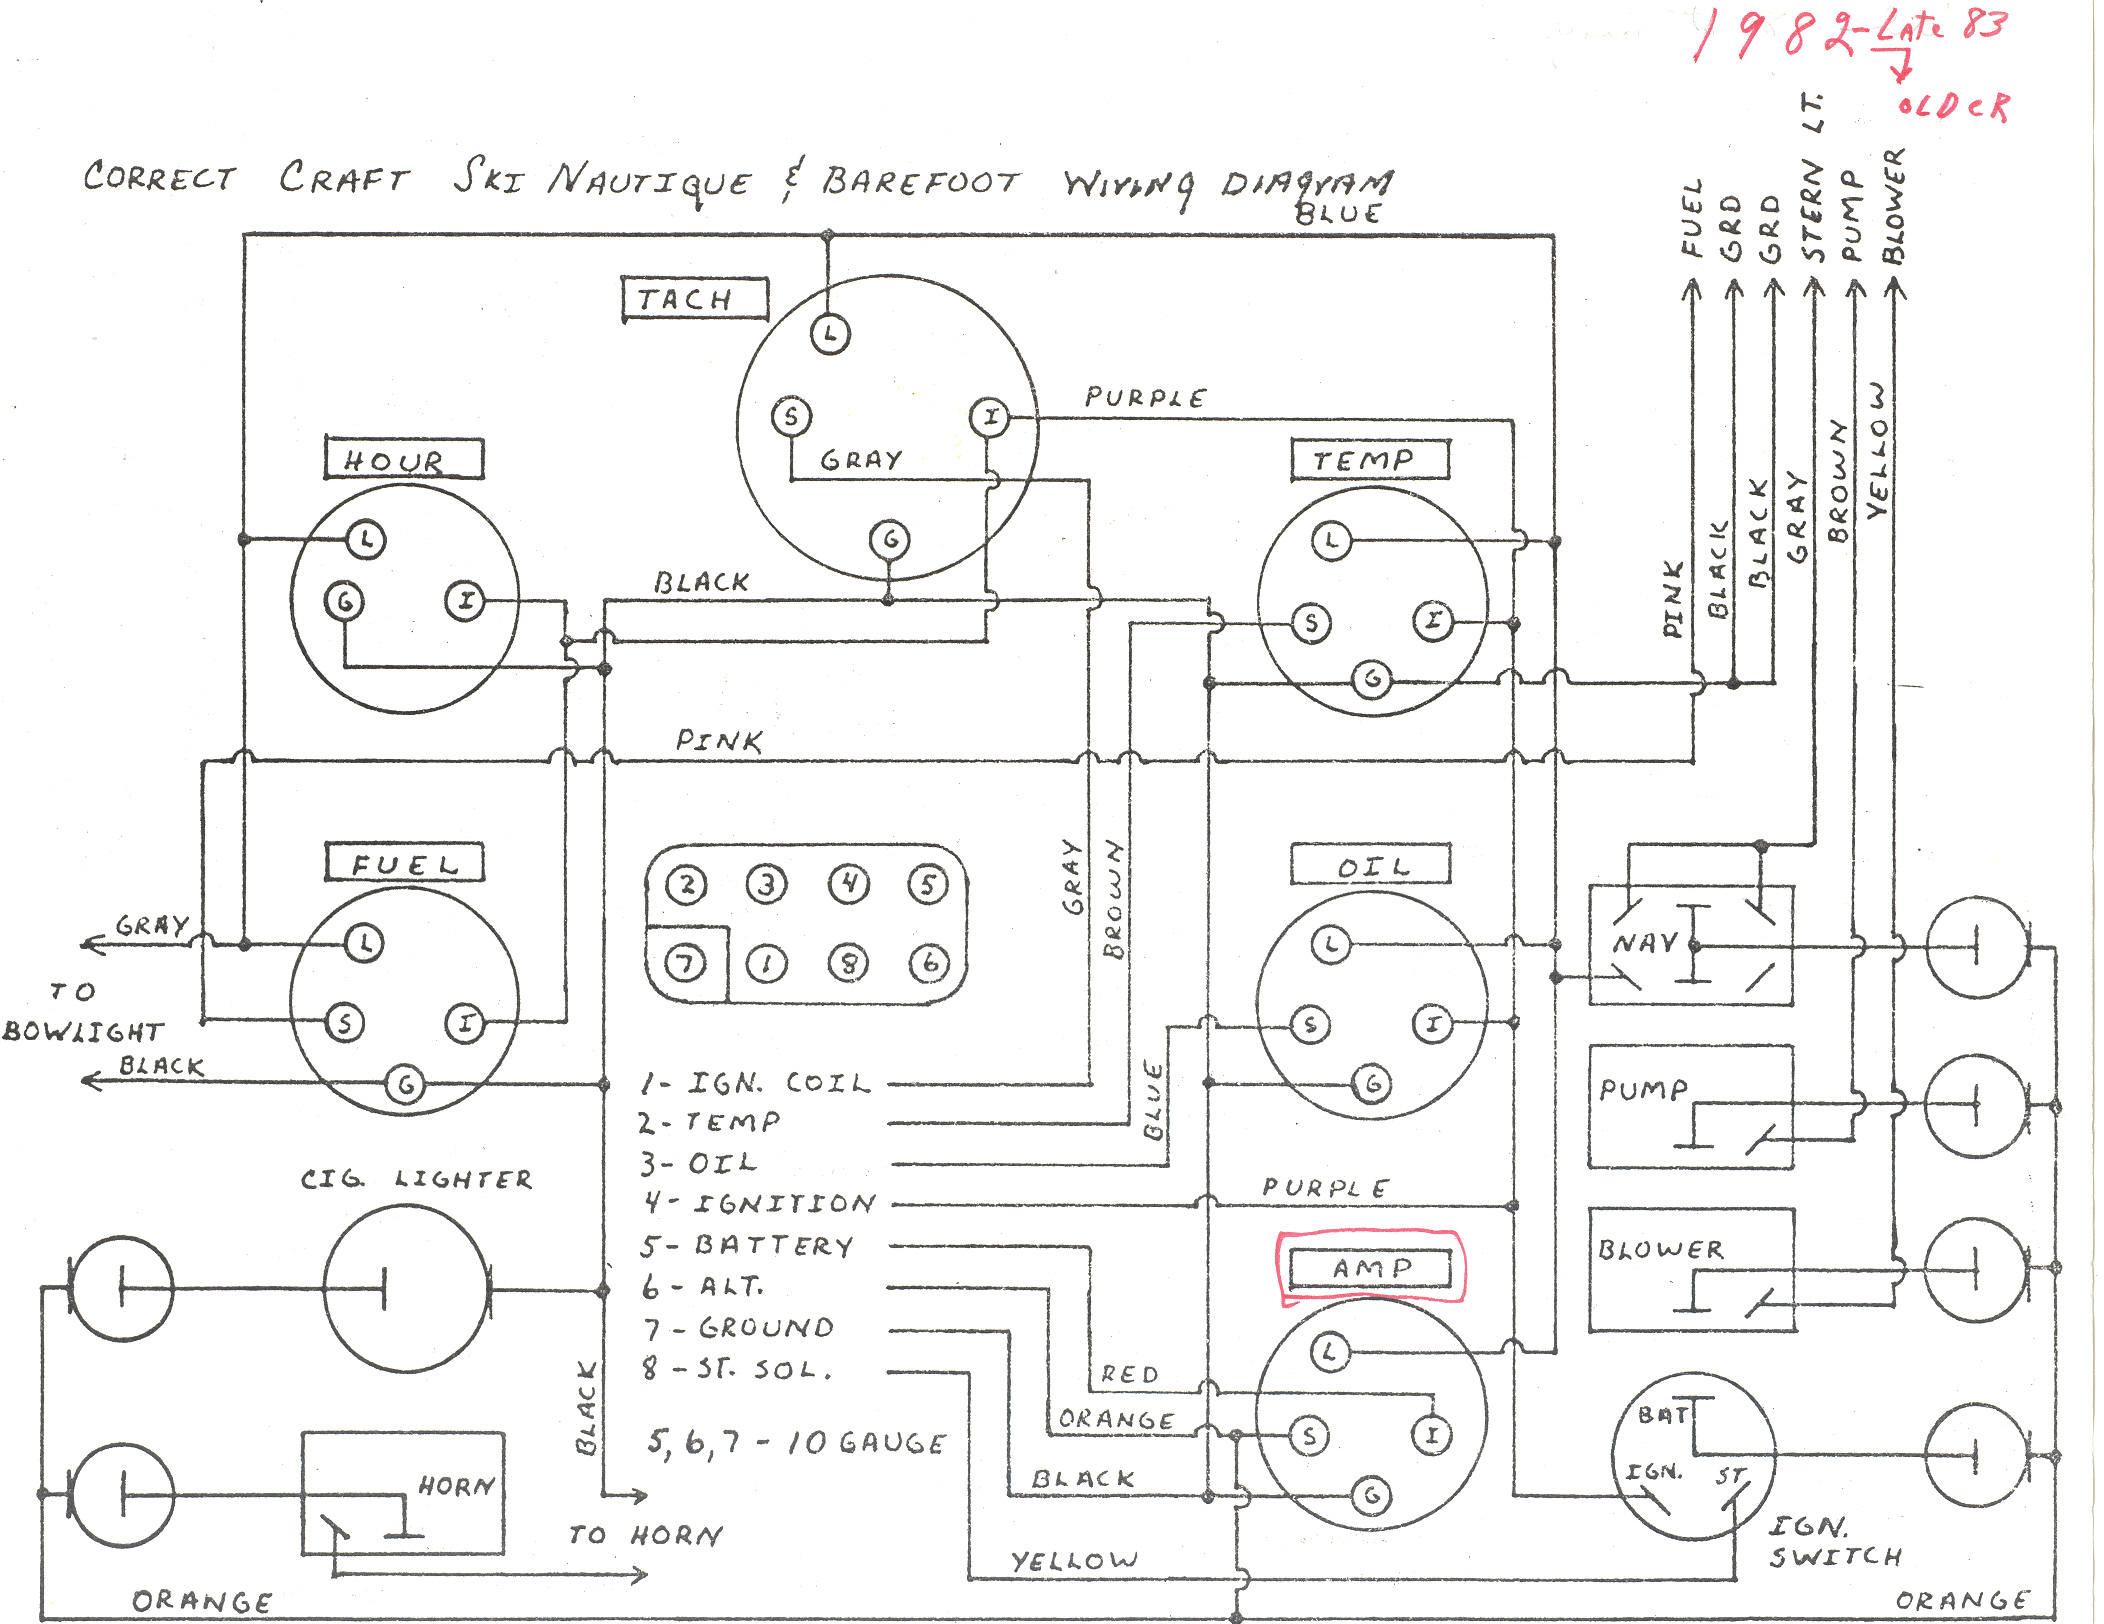 small resolution of 1983 sea ray 190 wiring schematic 33 wiring diagram